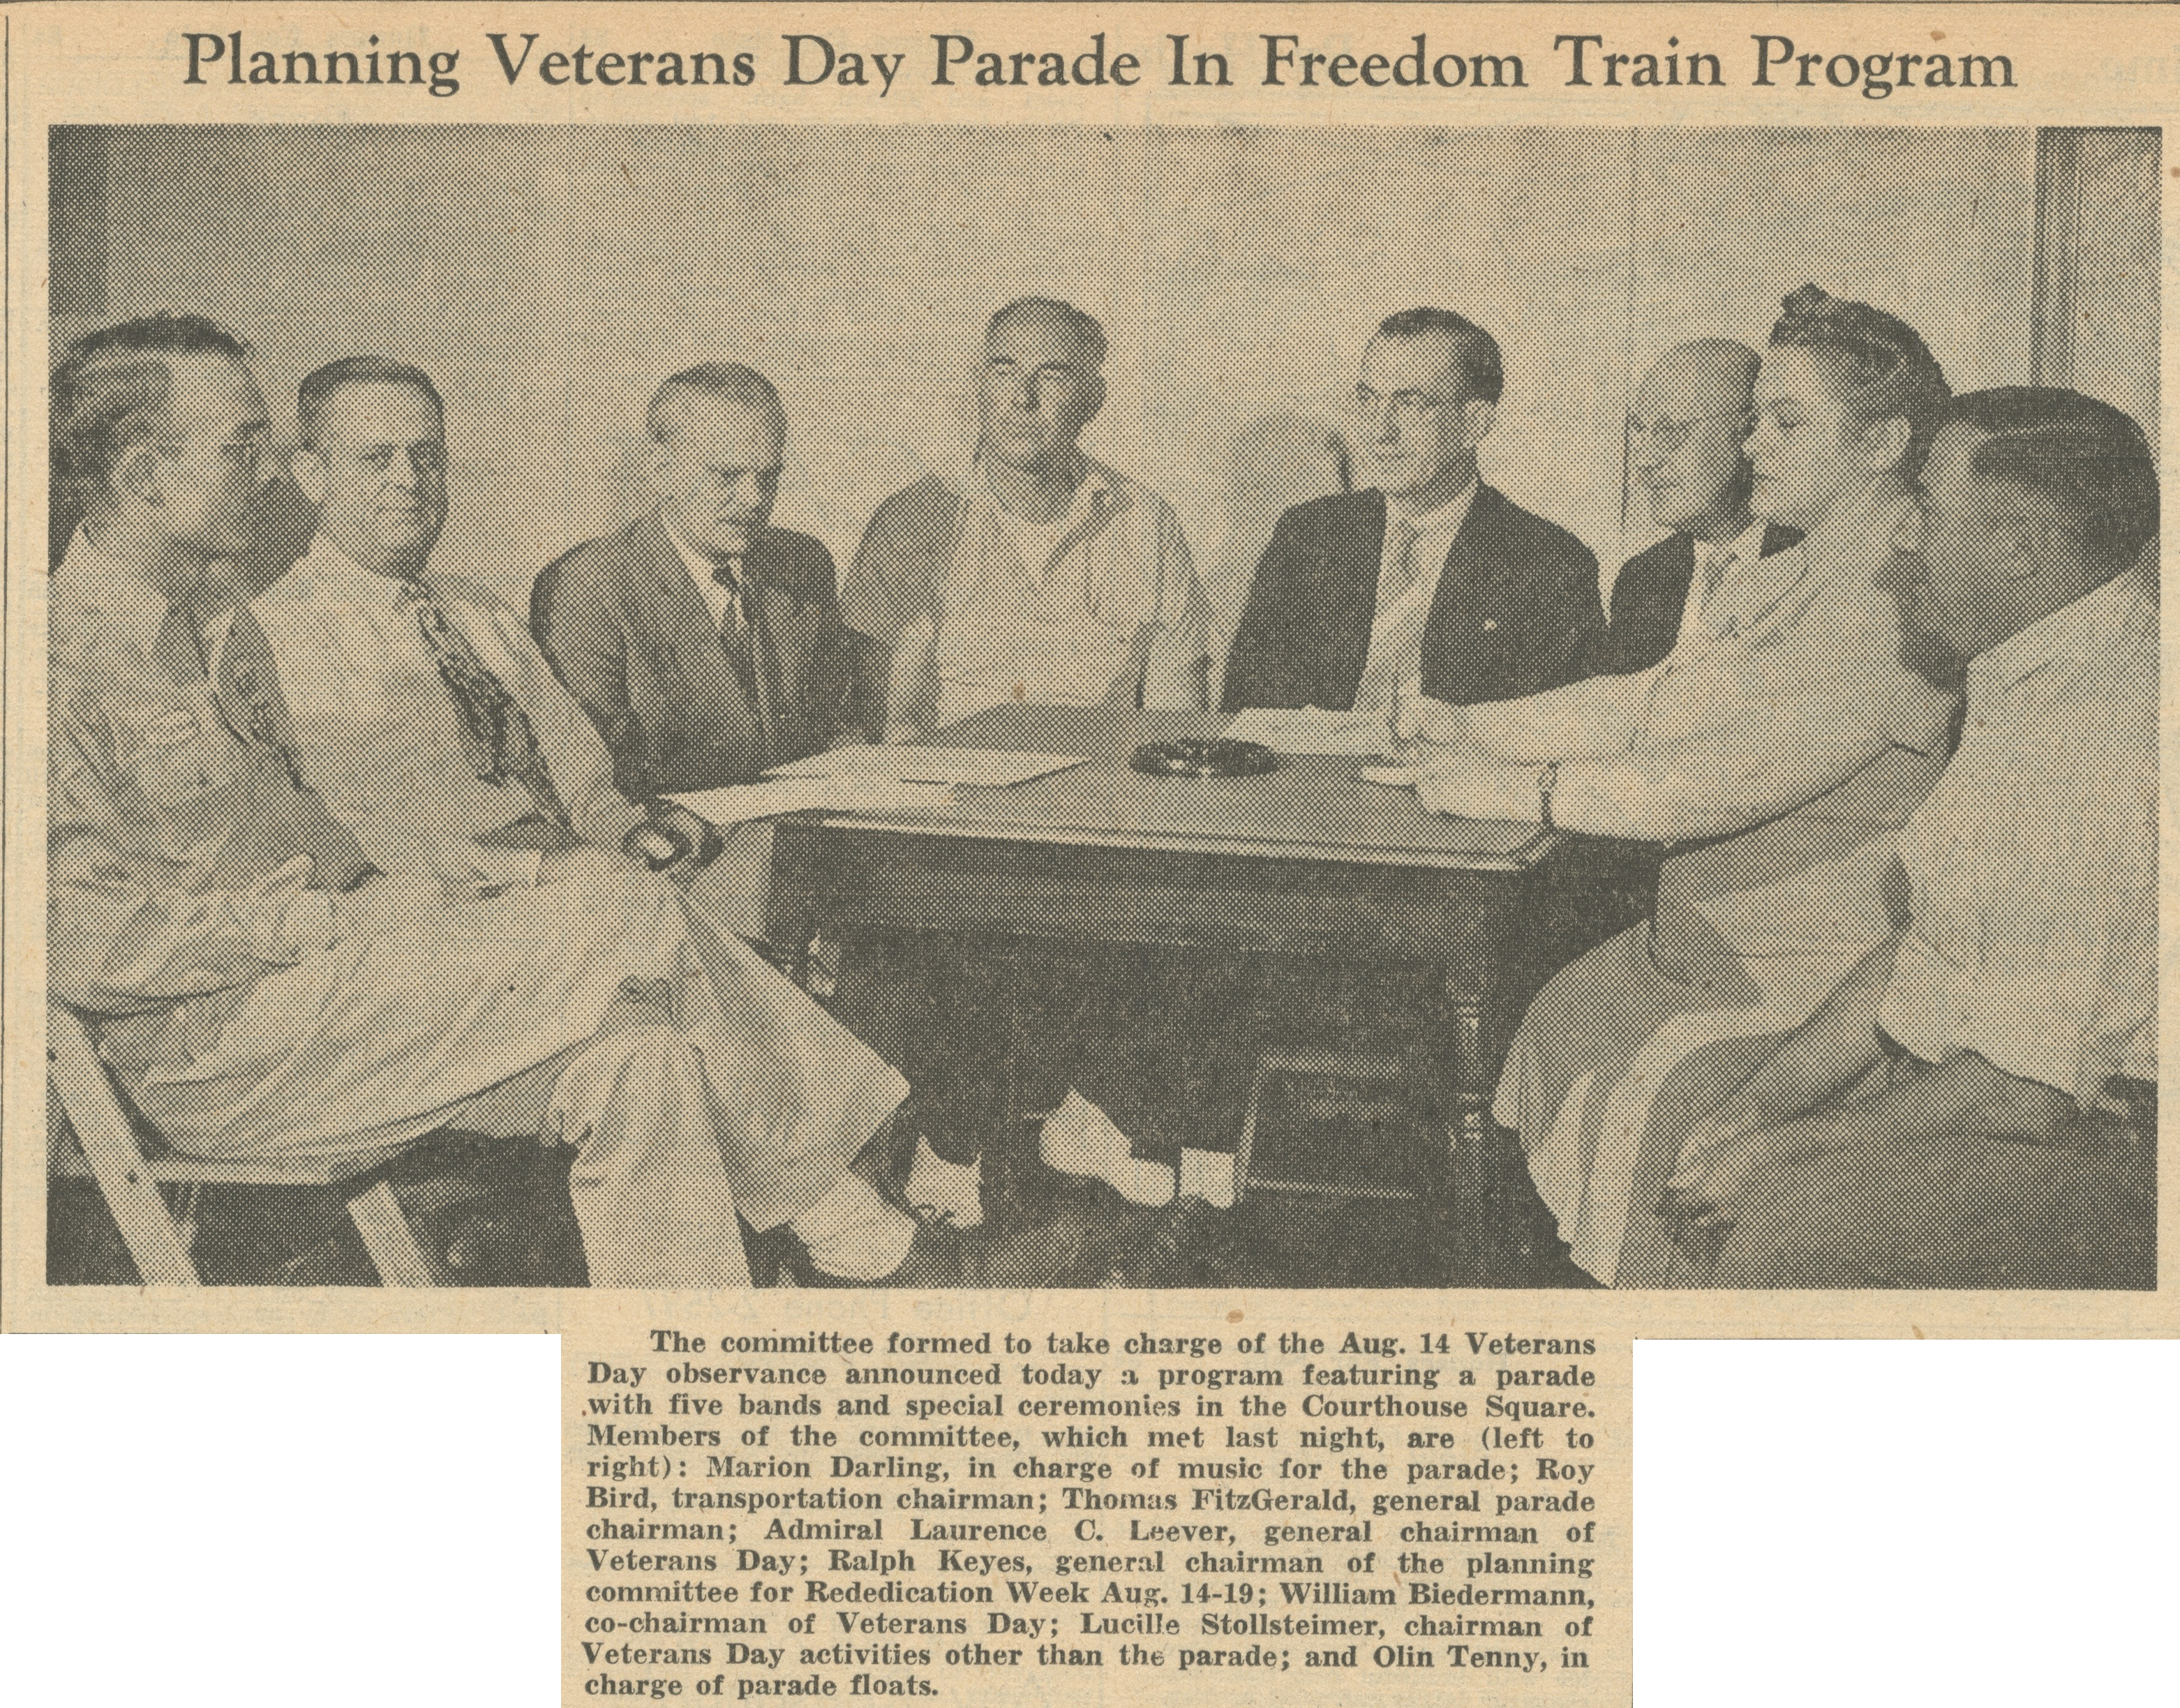 Planning Veterans Day Parade In Freedom Train Program image